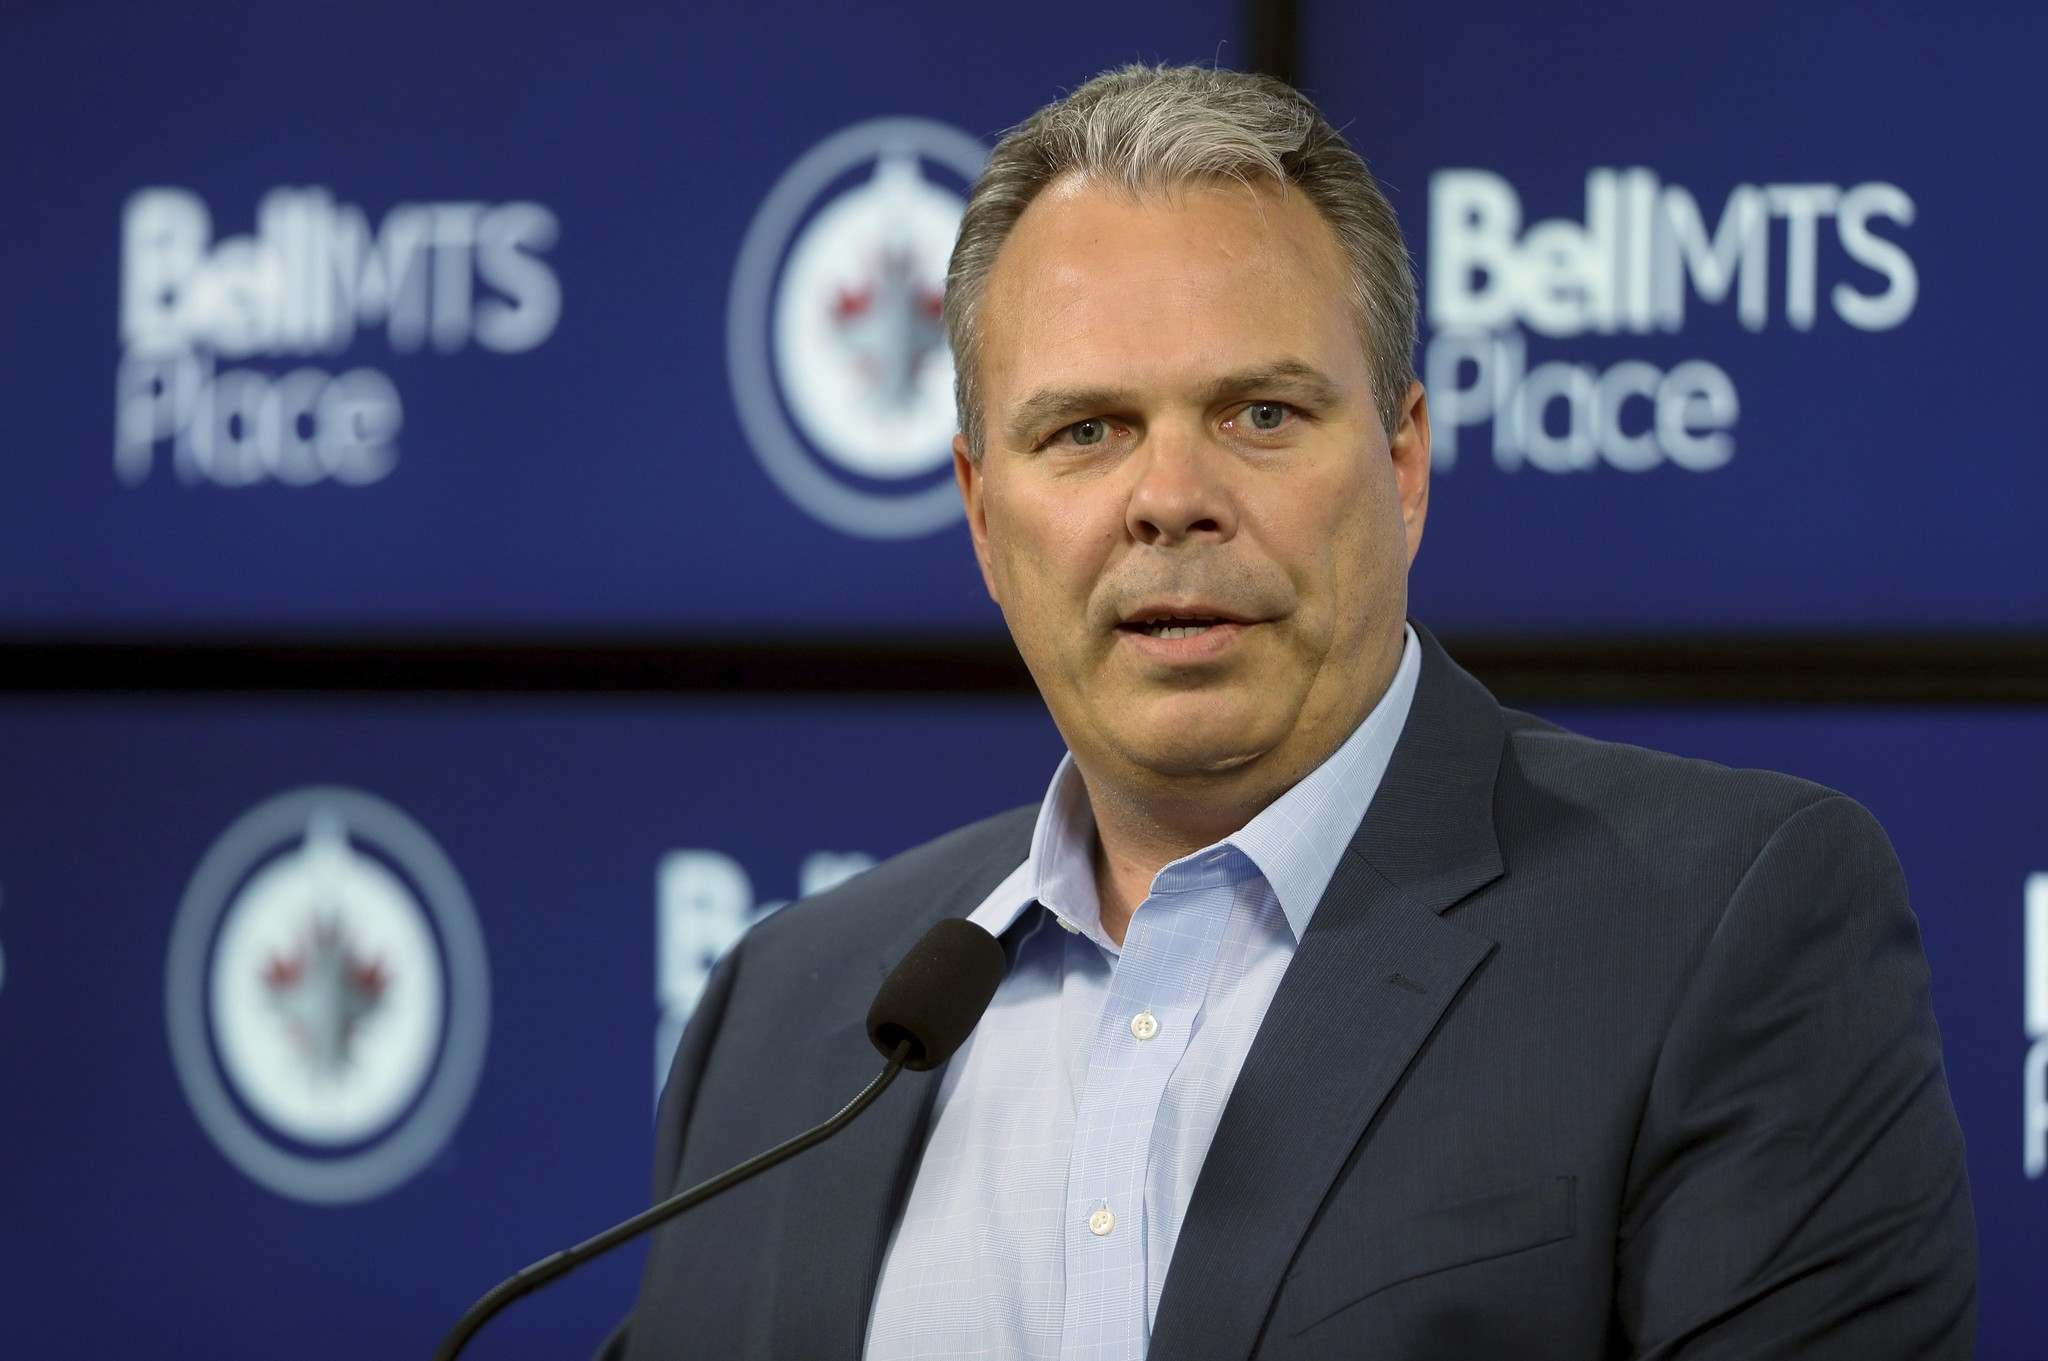 THE CANADIAN PRESS/Trevor Hagan</p><p>Winnipeg Jets' general manager Kevin Cheveldayoff addresses media prior to the team's first preseason game against the Minnesota Wild in Winnipeg, Monday.</p>